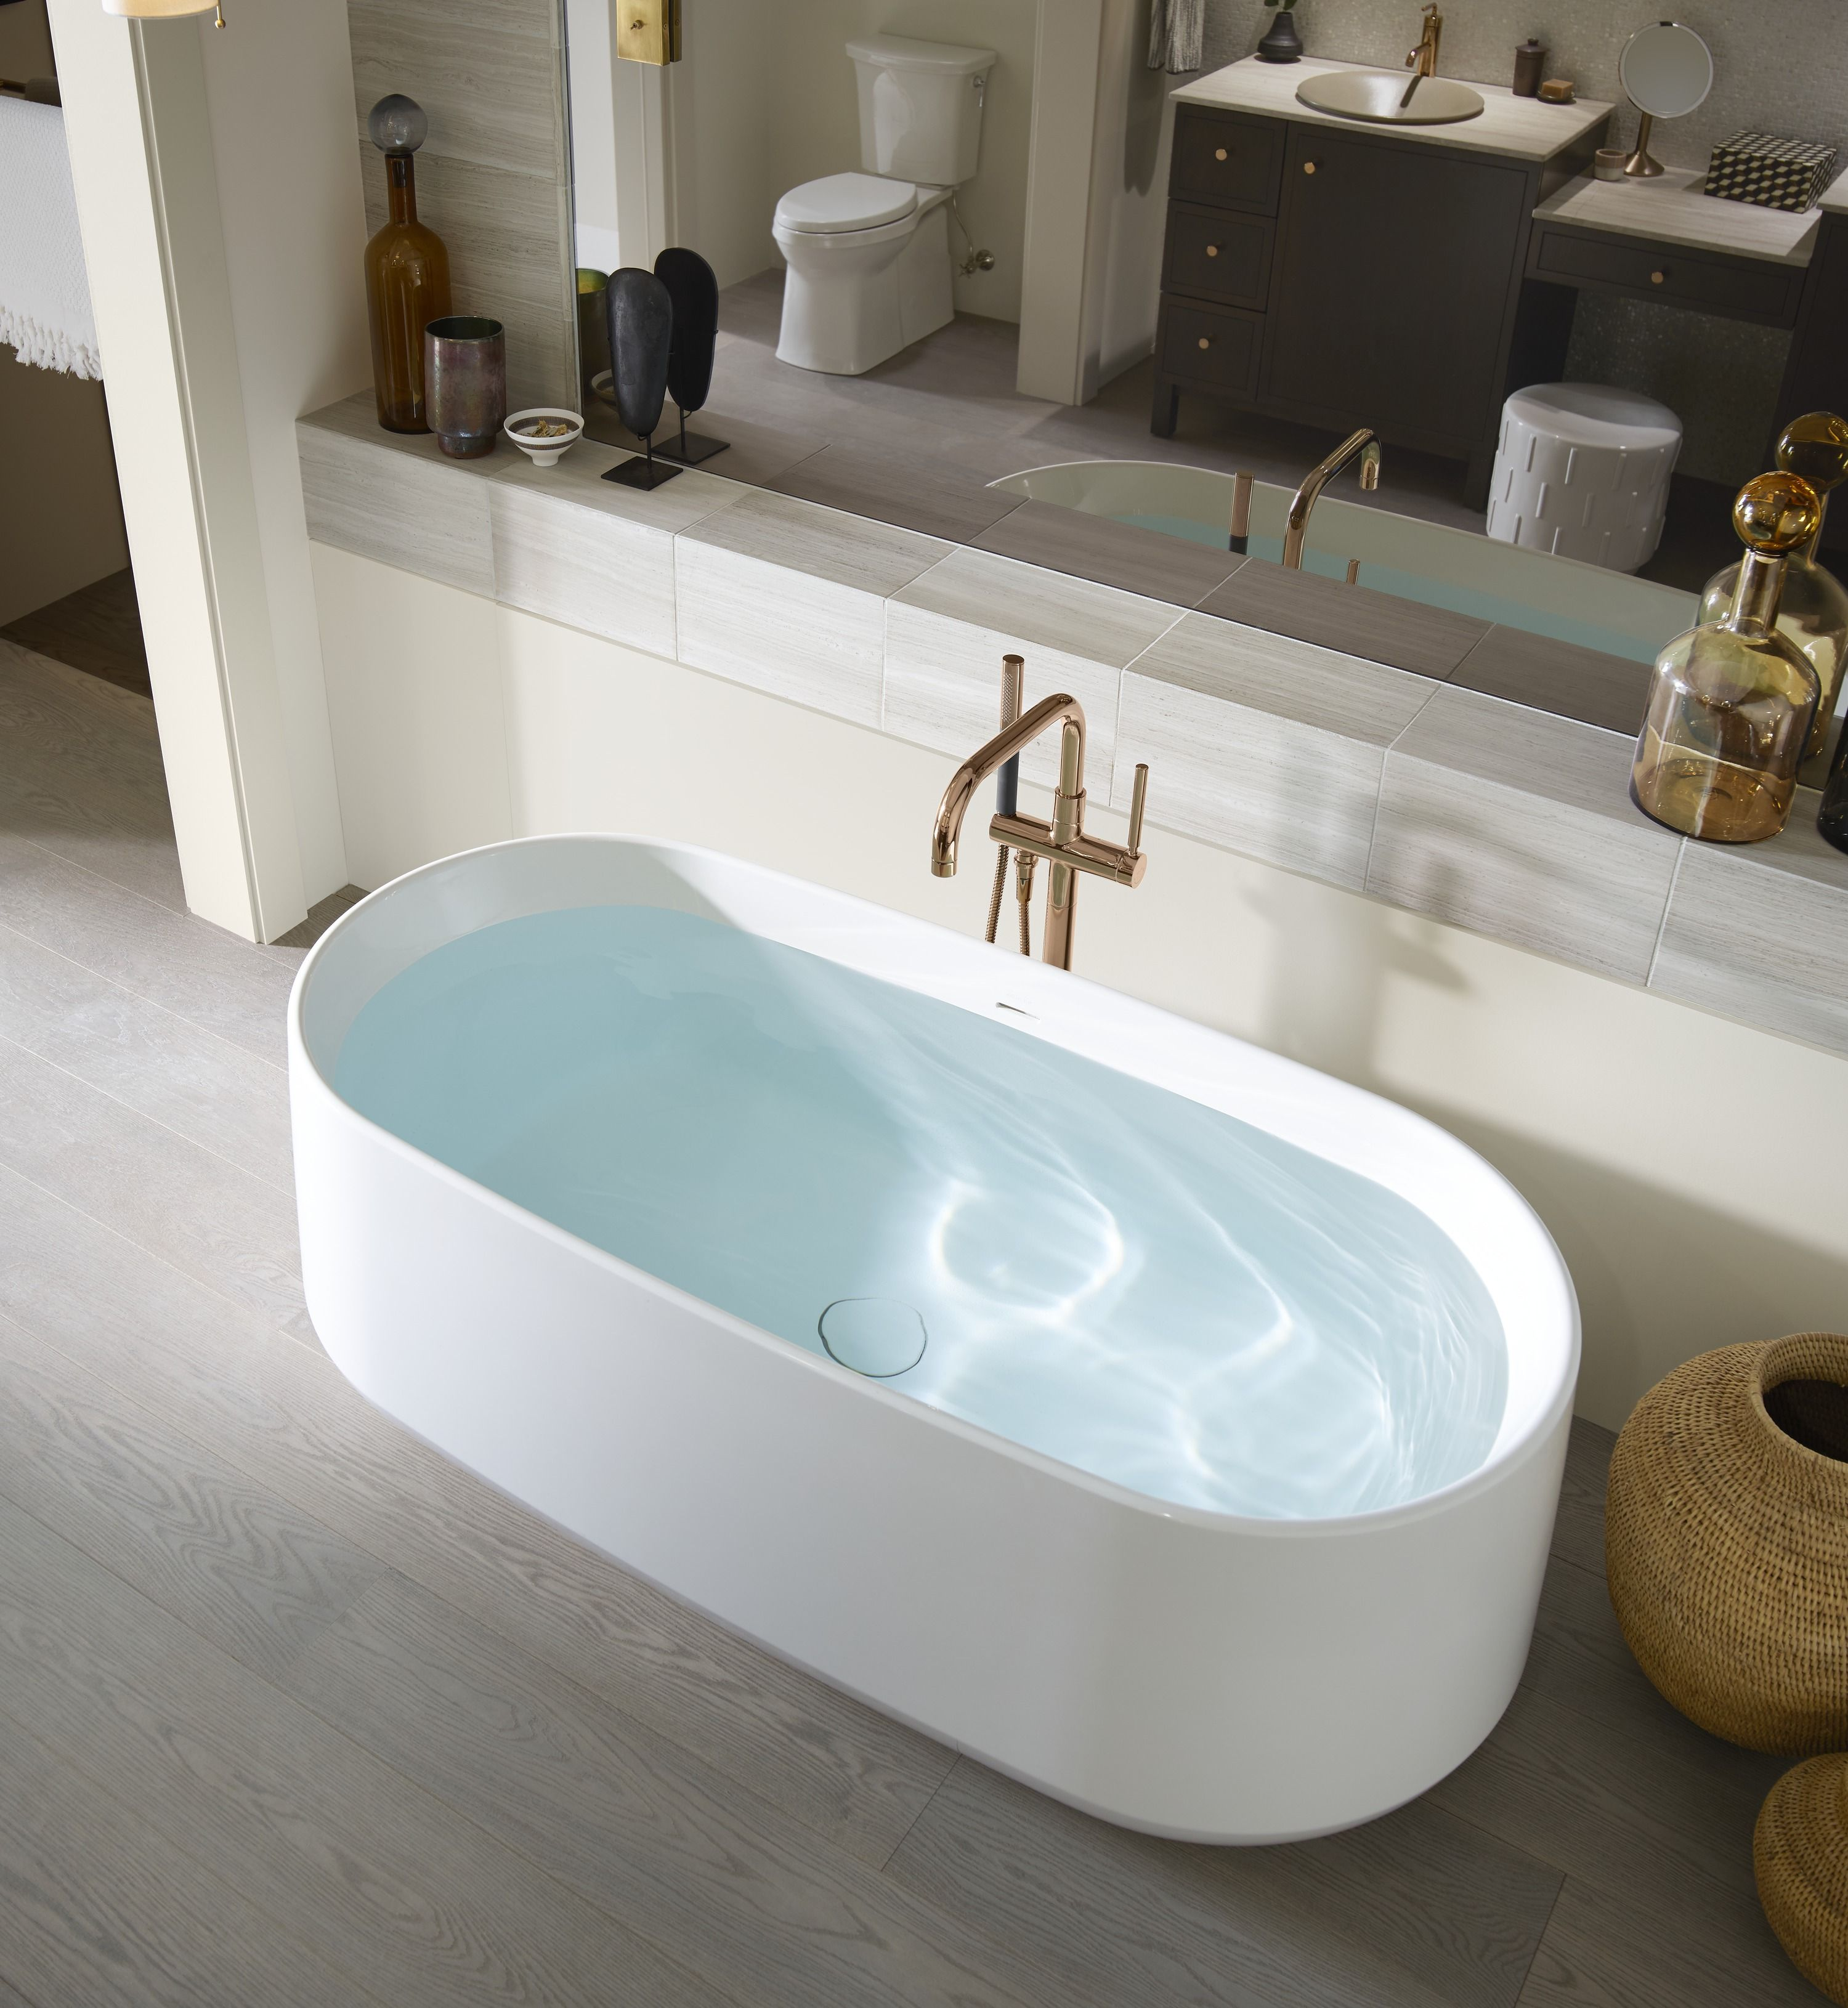 Climb On In And Take A Soak In The Kohler Ceric Freestanding